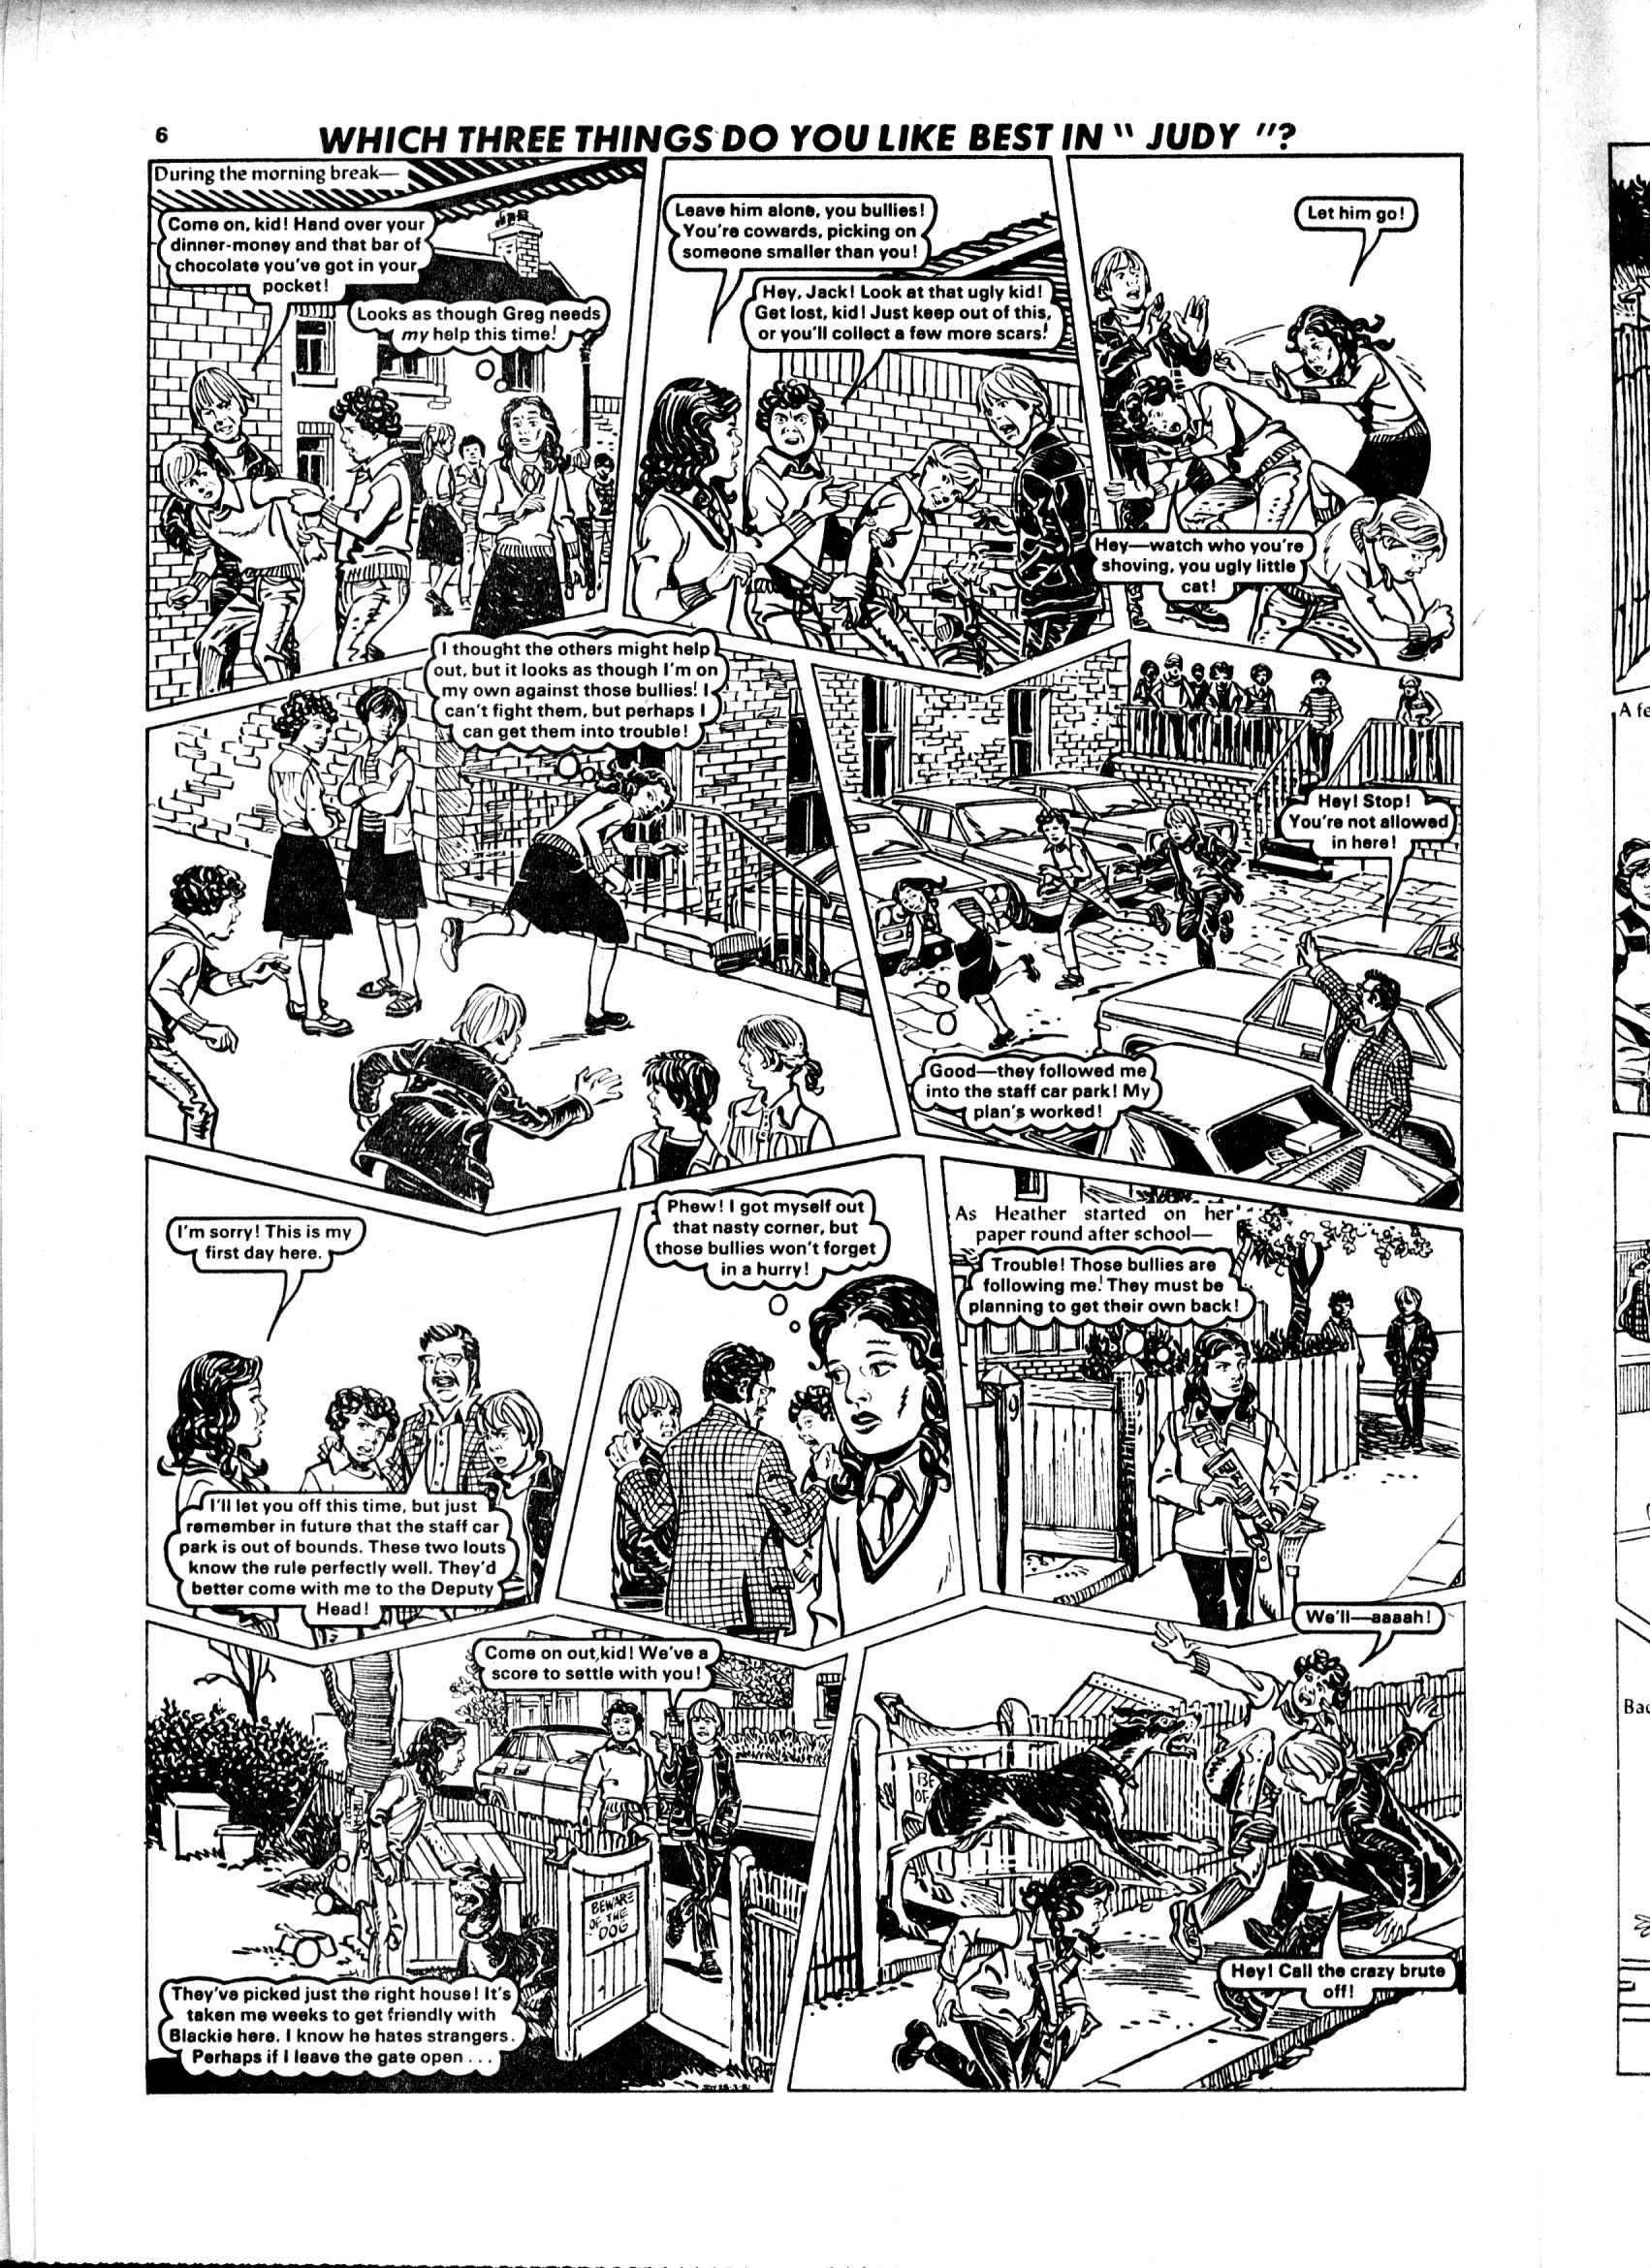 Read online Judy comic -  Issue #1107 - 6